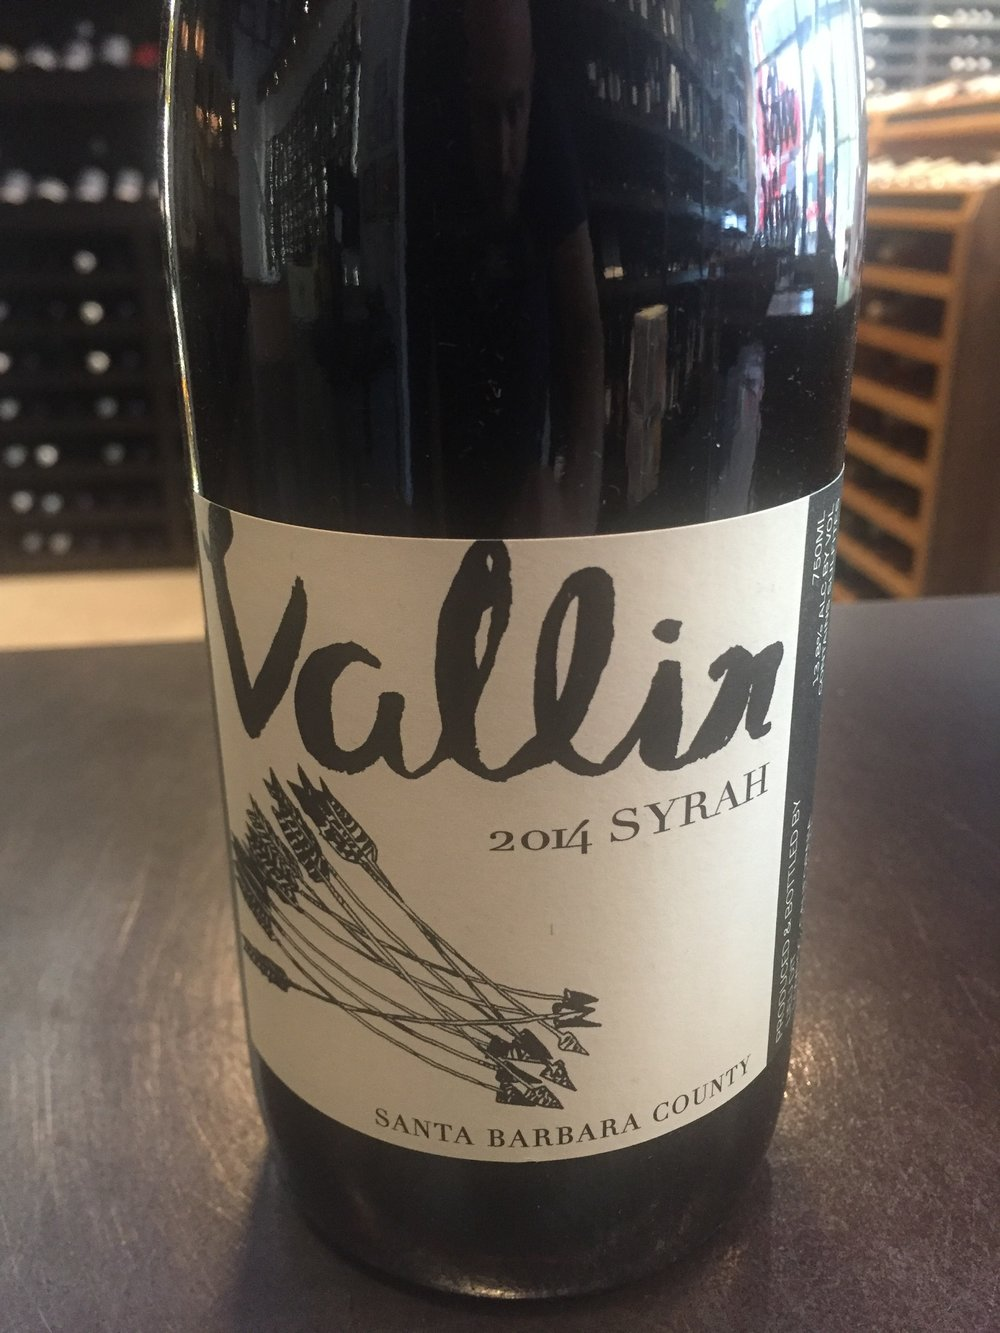 One Case Syrah, Vallin 2014 - This Syrah comes from vineyards in Santa Maria, Sta. Rita Hills, and Ballard Canyon. The soils are predominantly clay and loam. 100% whole cluster, the Syrah sat on its skins for 2.5 weeks with minimal extraction, before being transferred to neutral French oak where it saw a longer elevage (18 months). All native yeast fermentations, with no racking or battonage. Minimum sulphur was added just at bottling. One case of 12 bottles.Donor: Dustin WilsonOpening Bid: $280 Value: $375